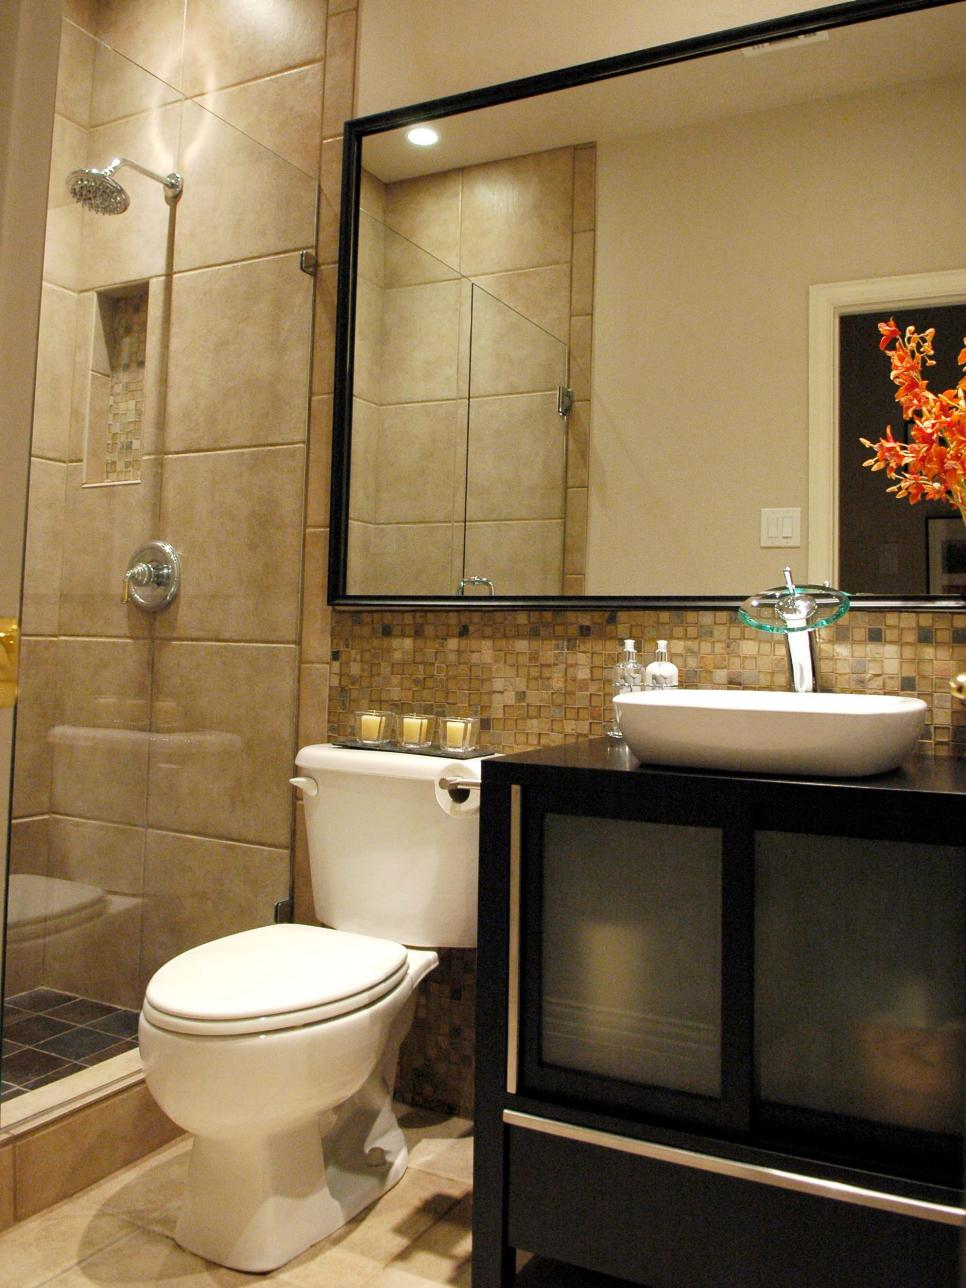 Bathrooms on a budget our 10 favorites from rate my space Contemporary bathrooms